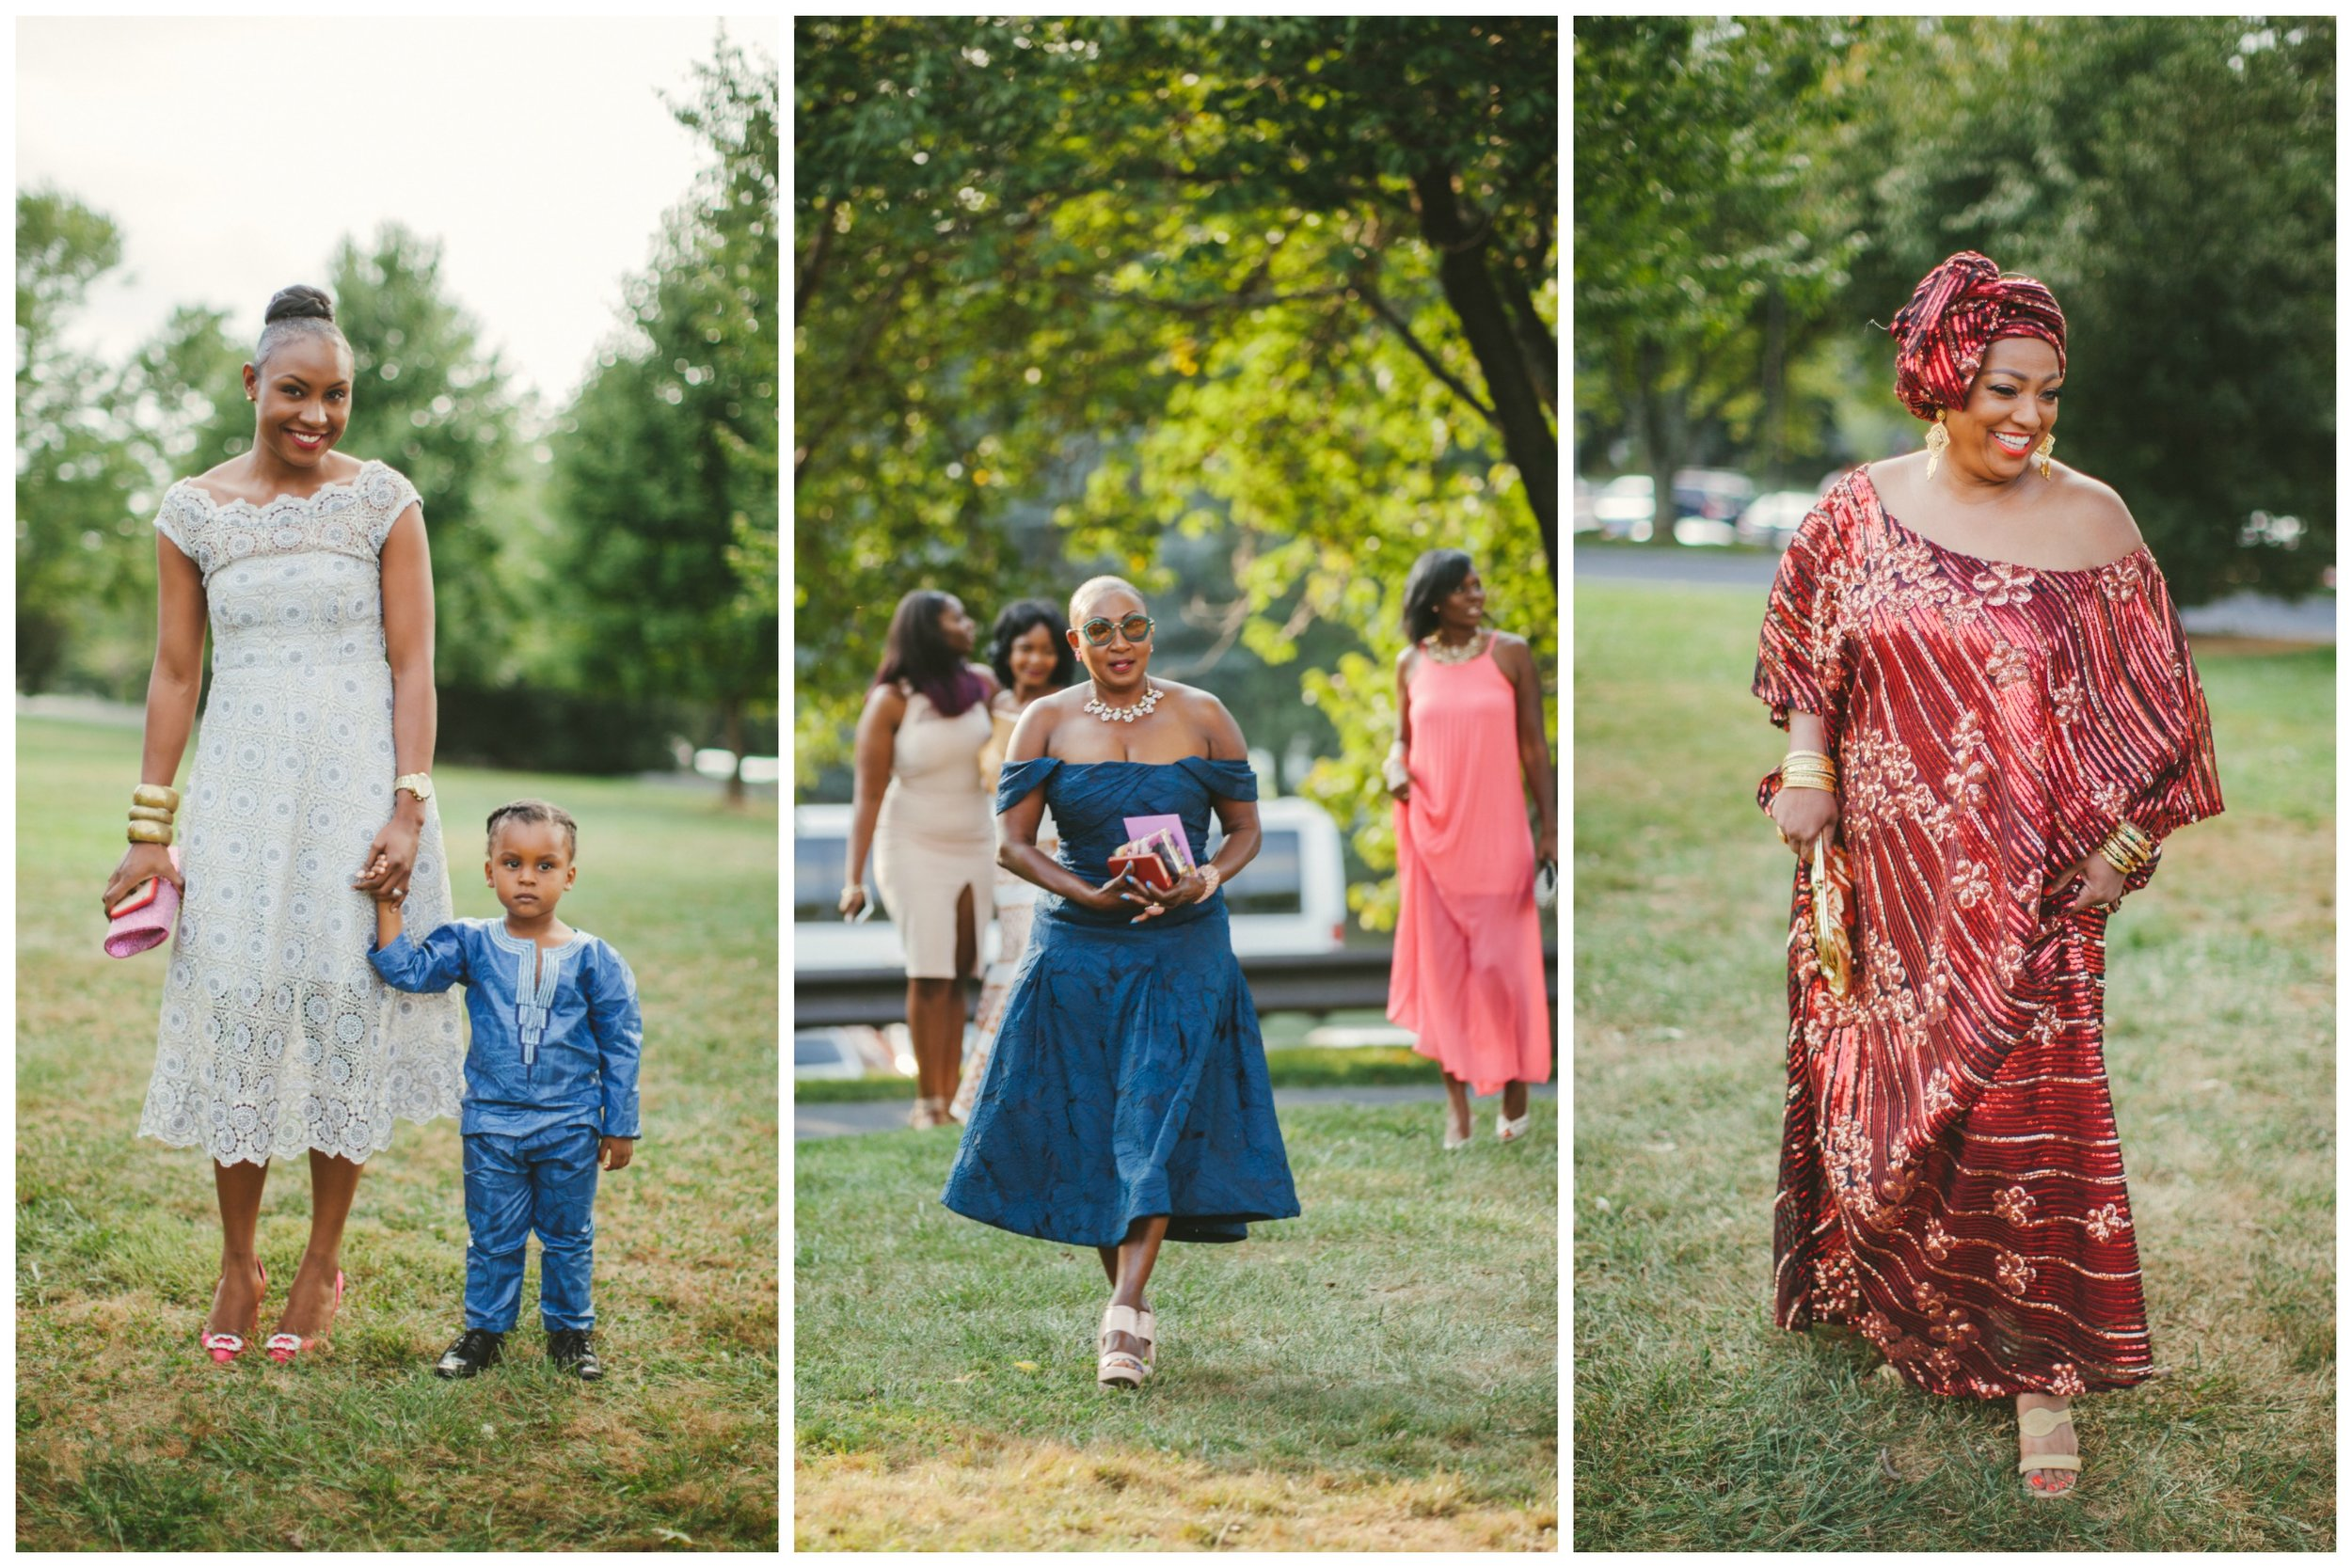 GLENVIEW MANSION PIC STITCH - INTIMATE WEDDING PHOTOGRAPHER - TWOTWENTY by CHI-CHI AGBIM 7.jpg